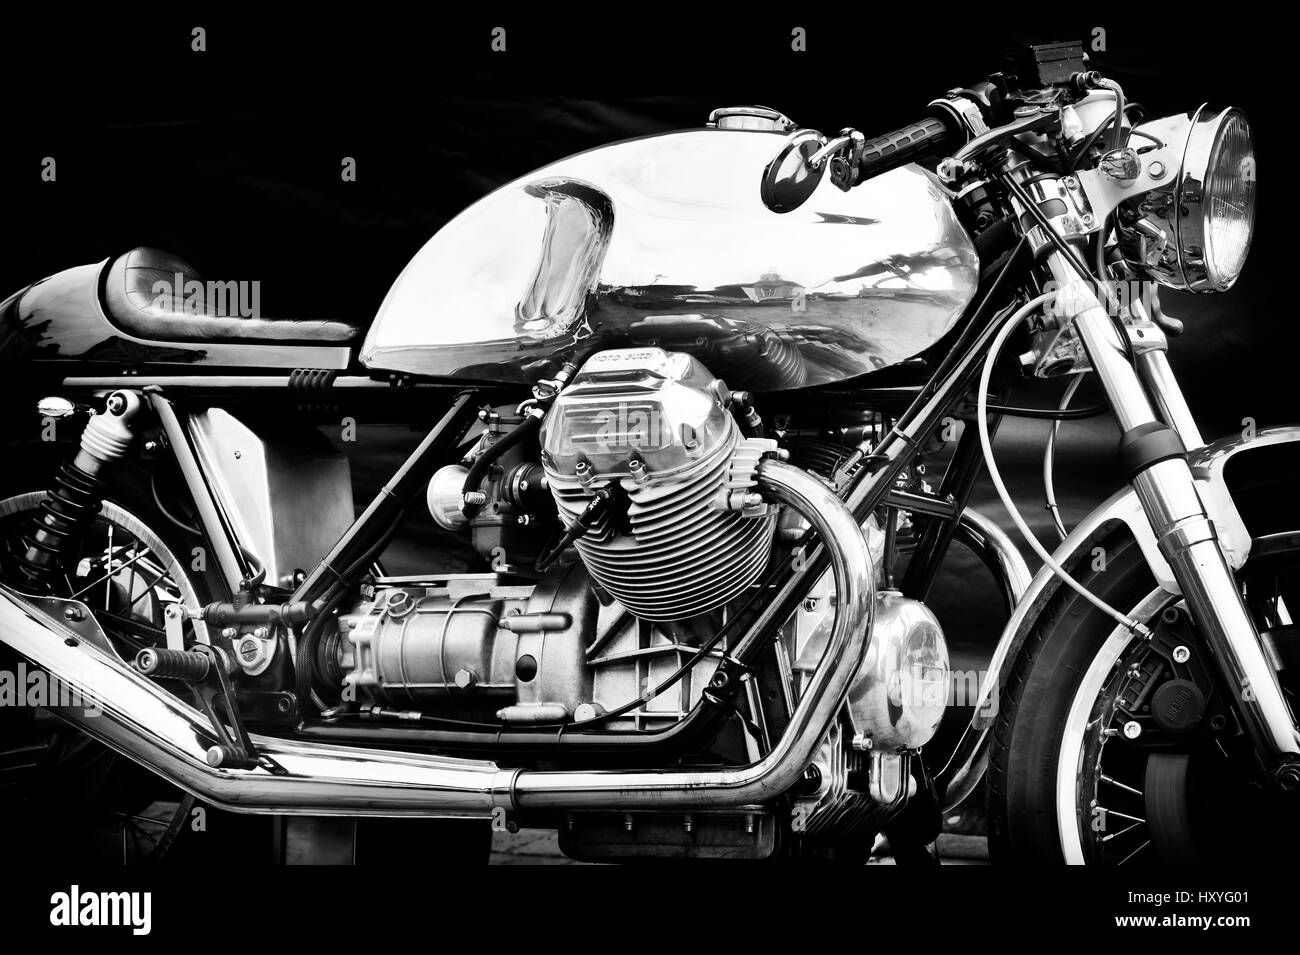 Moto Guzzi Cafe Racer Motorcycle Classic Italian Black And White